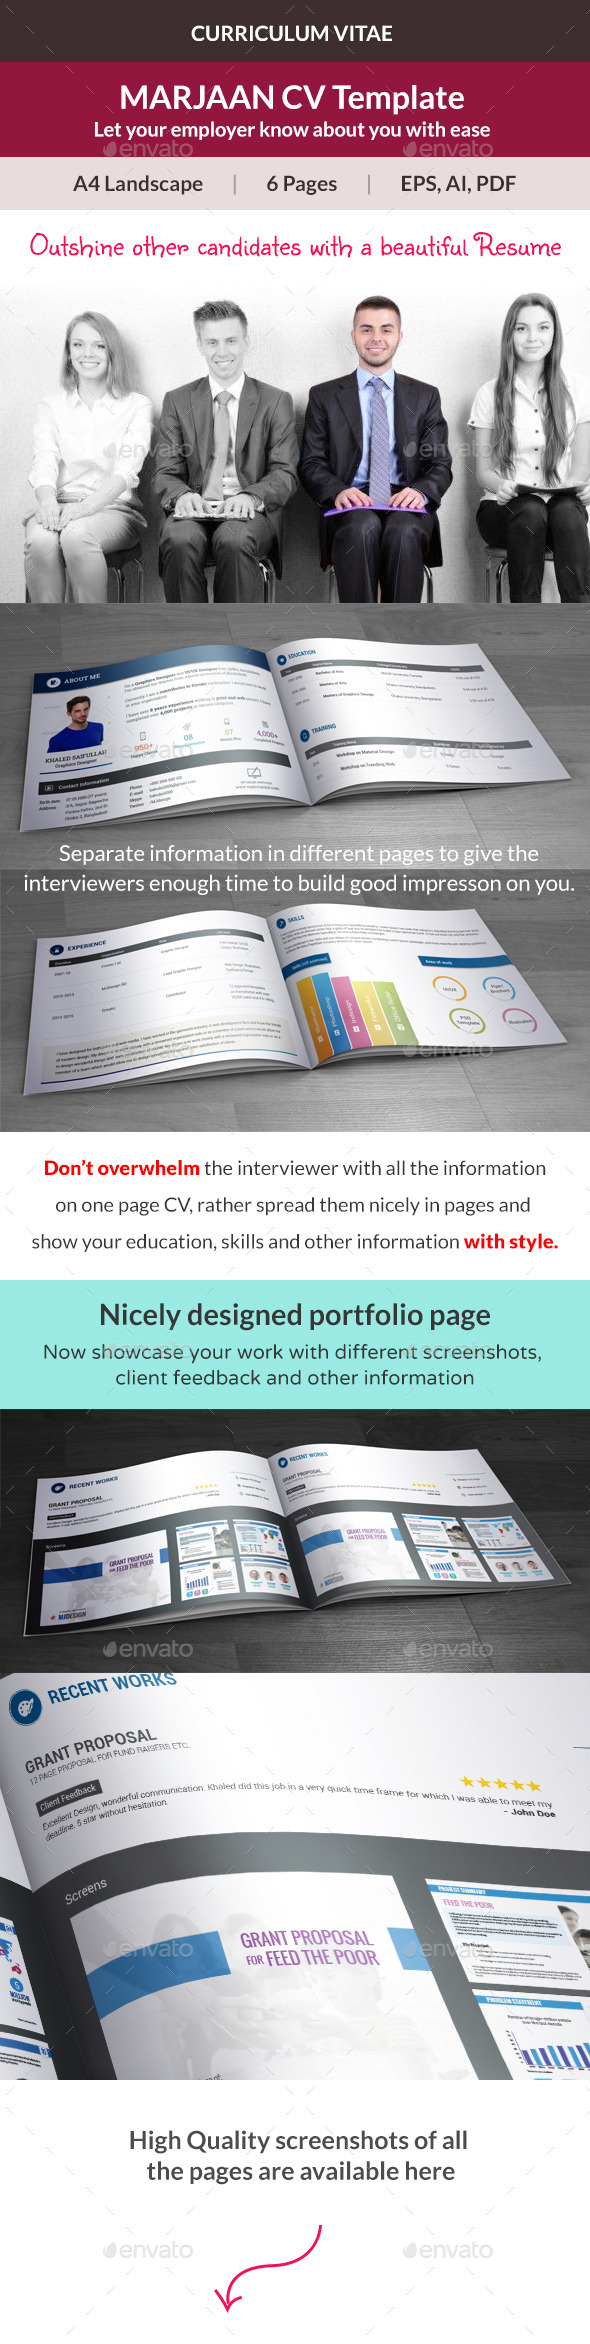 GraphicRiver Marjaan CV Resume Template 10352884